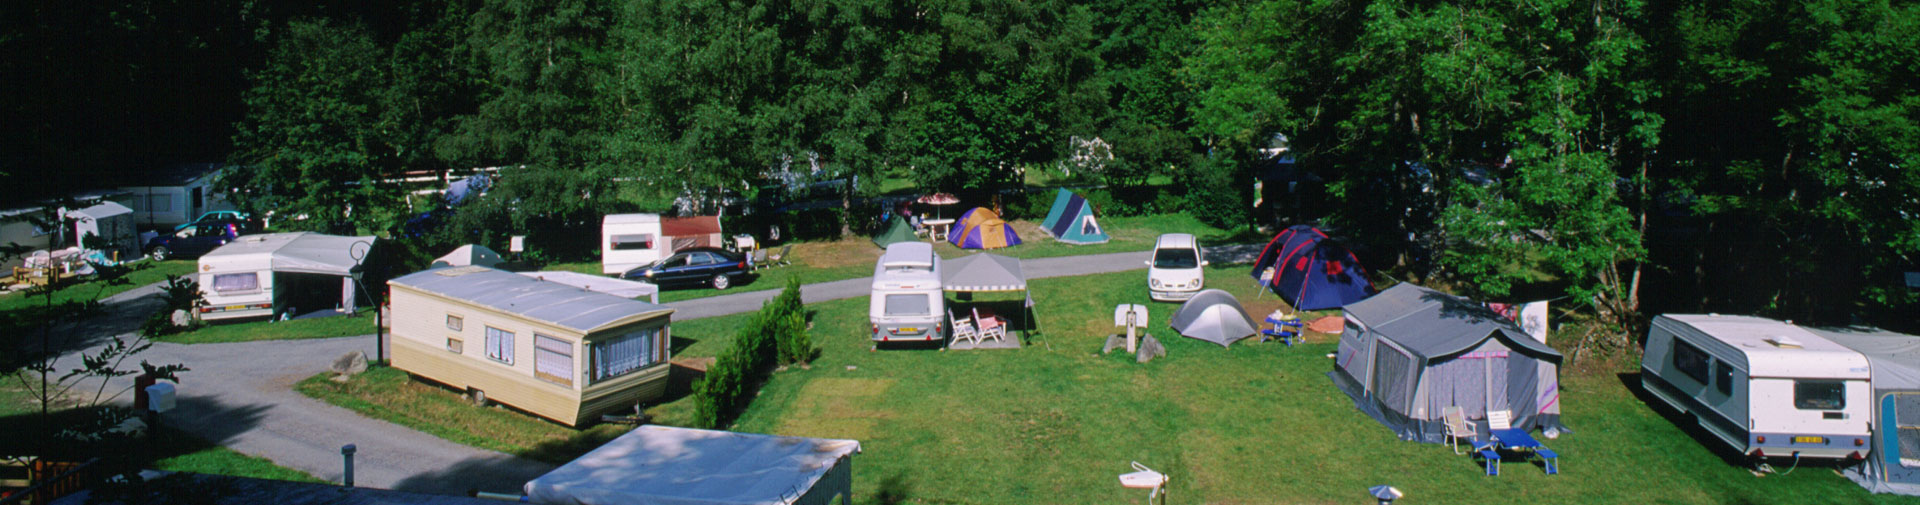 emplacement-camping-oree-des-monts-hautes-pyreneesjpg